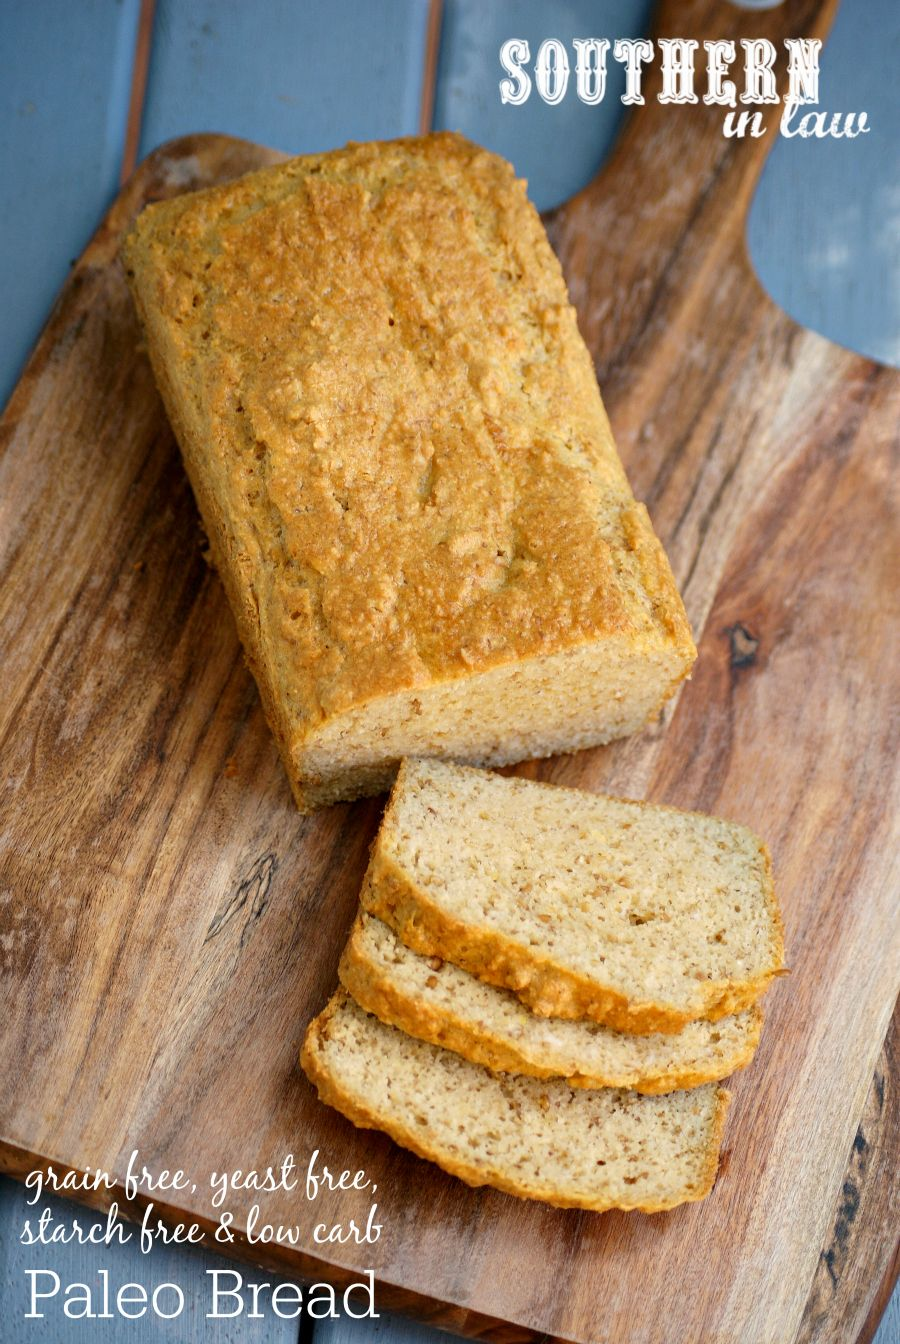 Recipe Starch Yeast Grain Free Paleo Bread Paleo Bread Yeast Free Breads Starch Free Recipe